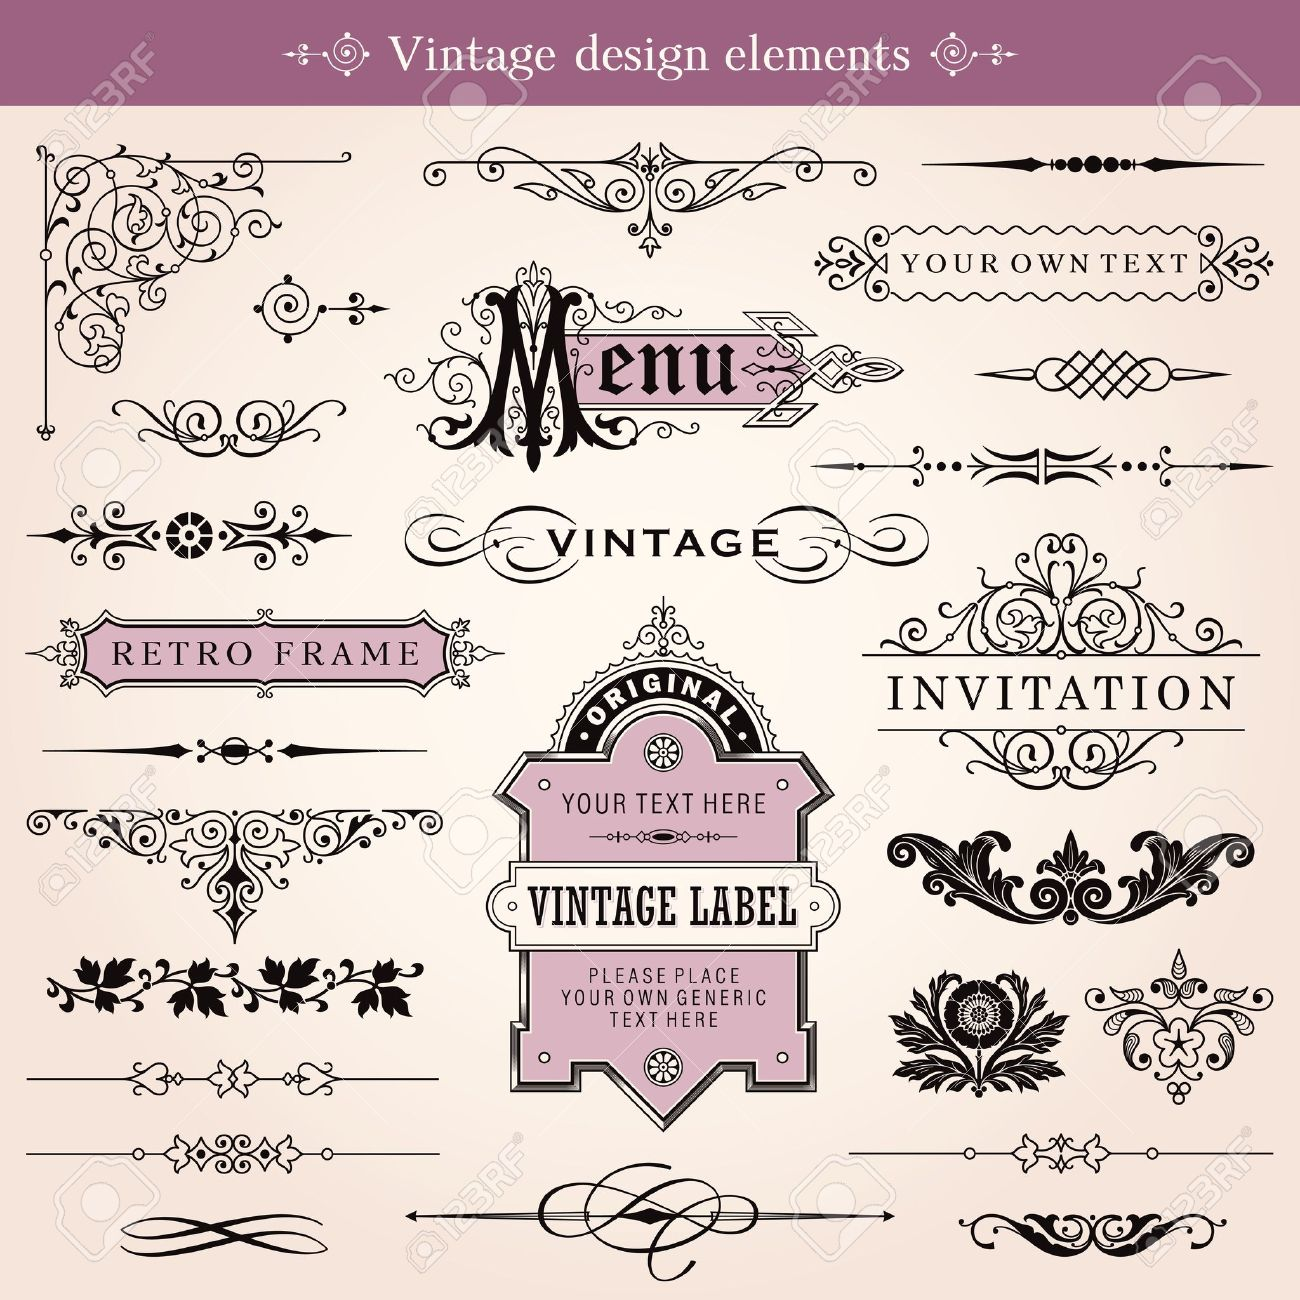 Vintage Calligraphic Design Elements And Page Decoration Stock Vector - 20489573